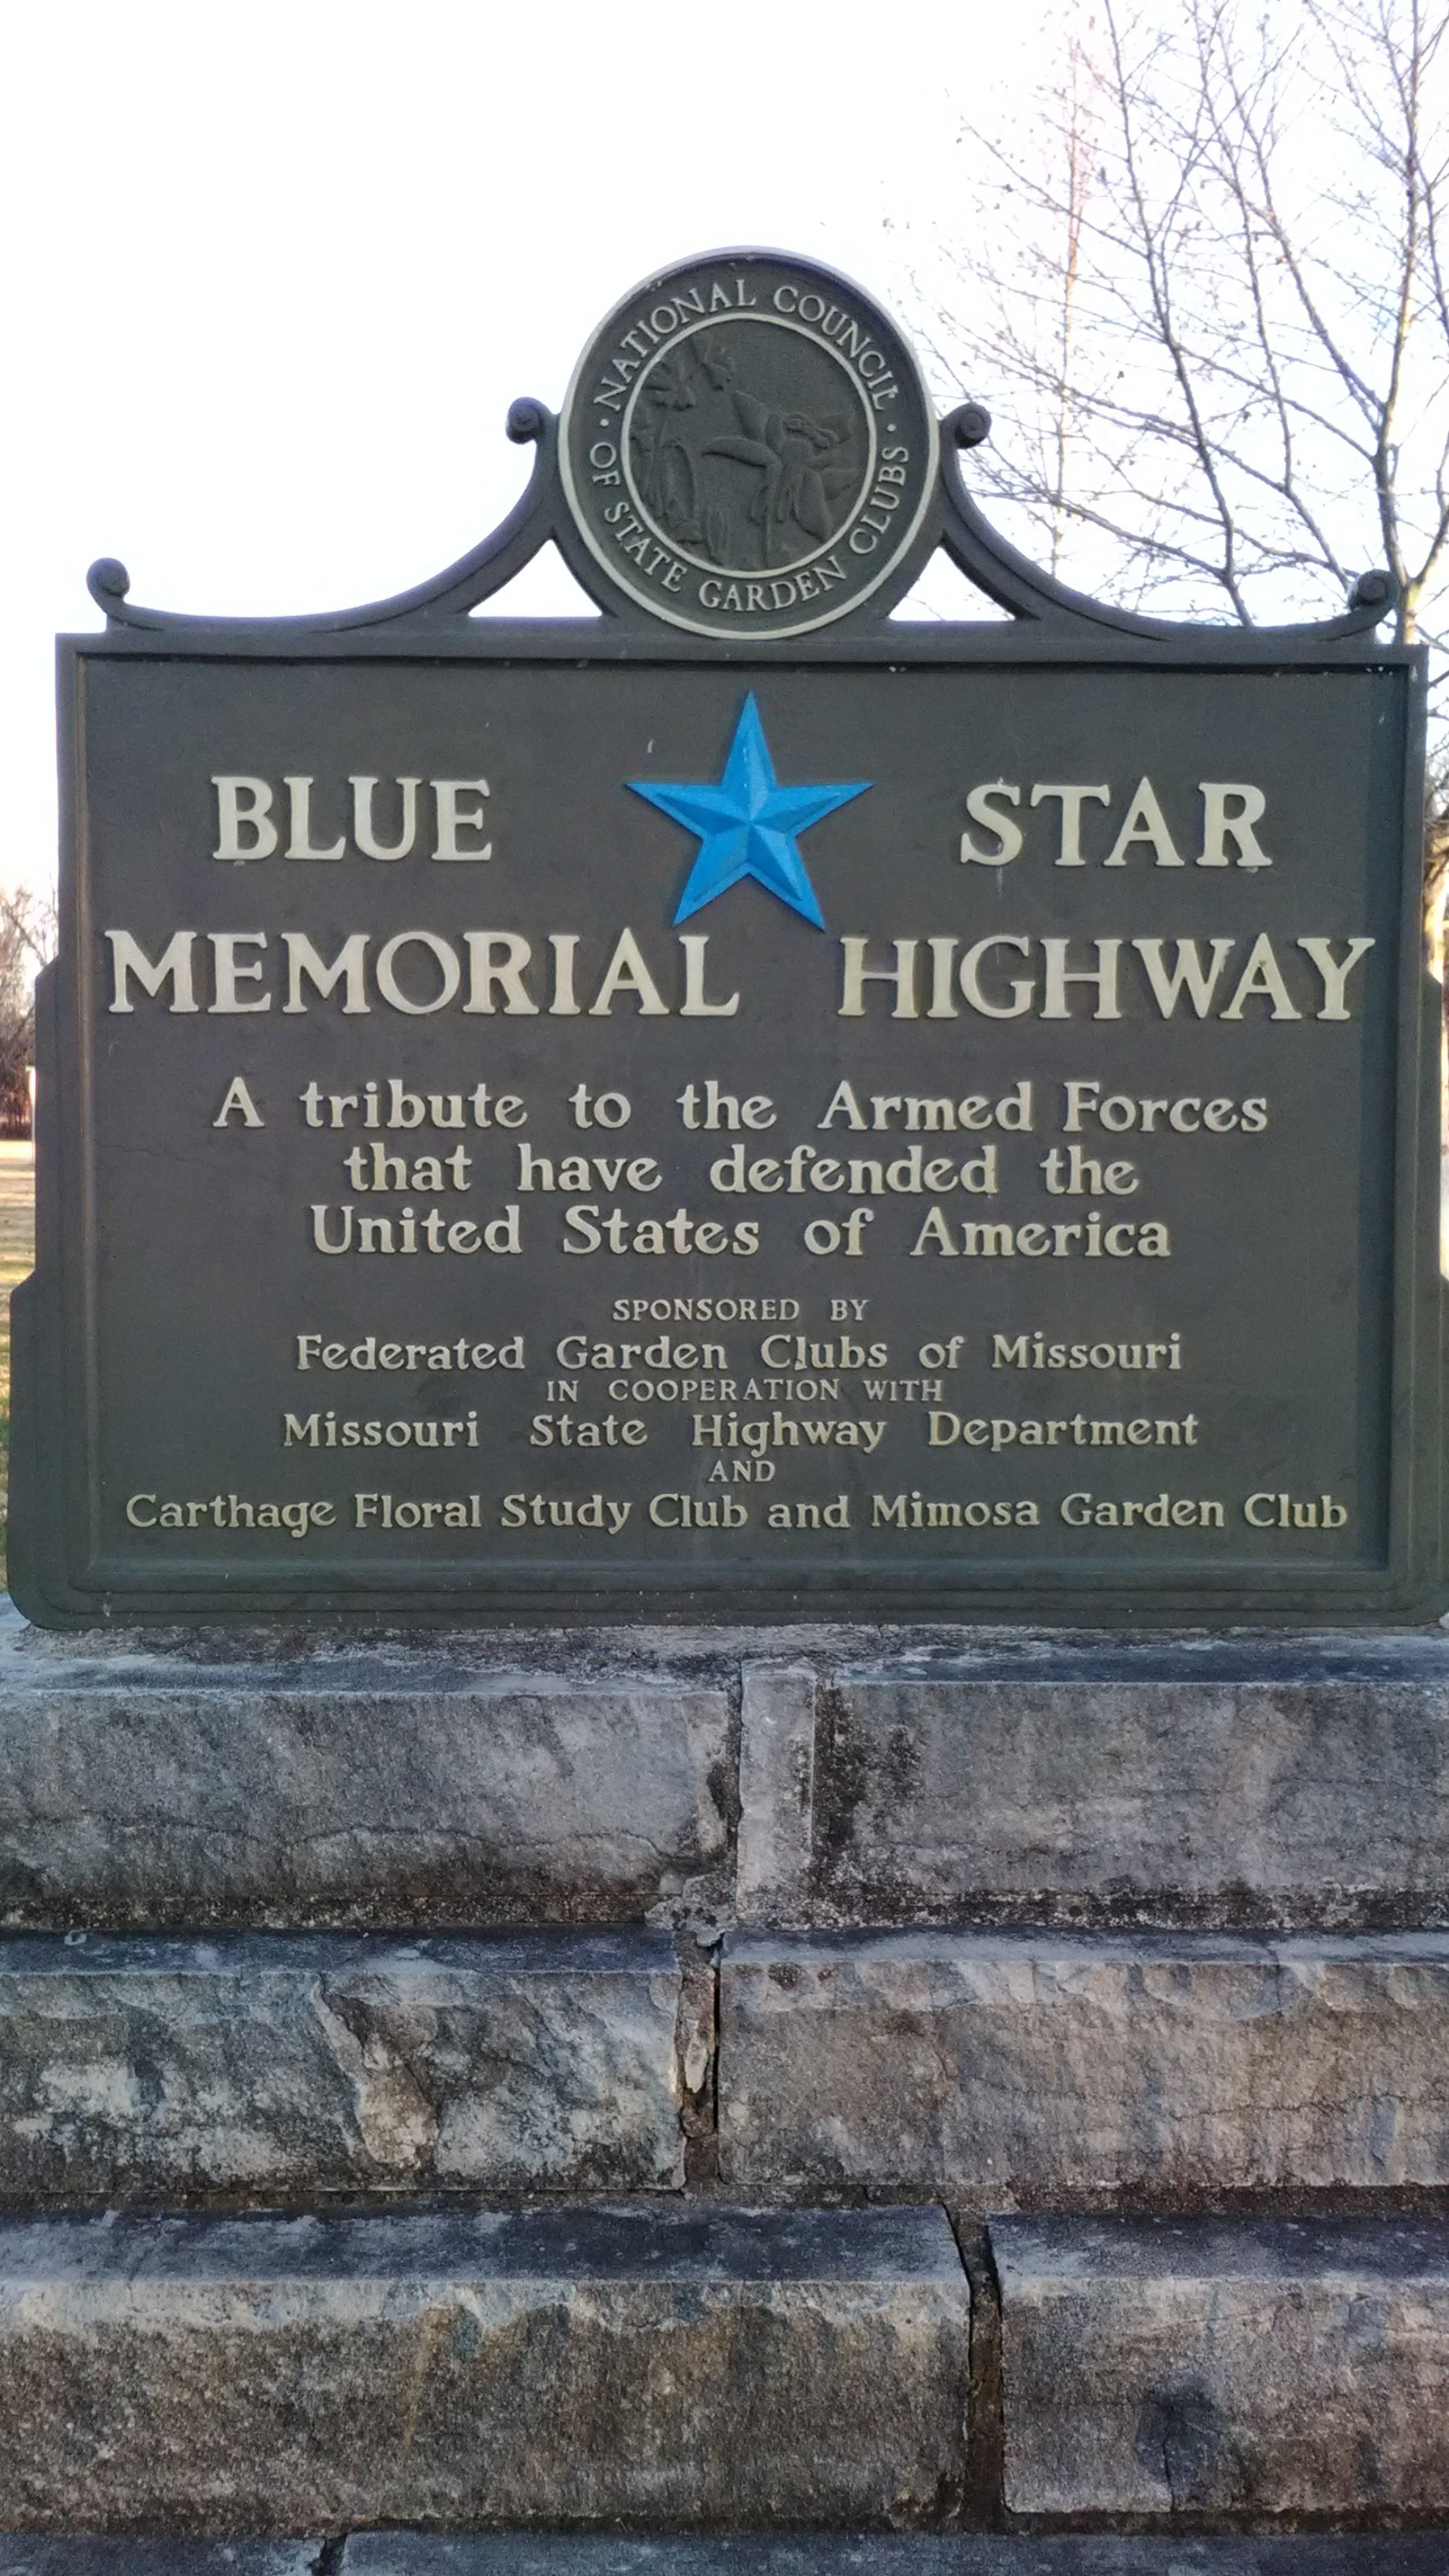 Blue Star Memorial Highway Marker, 2017.